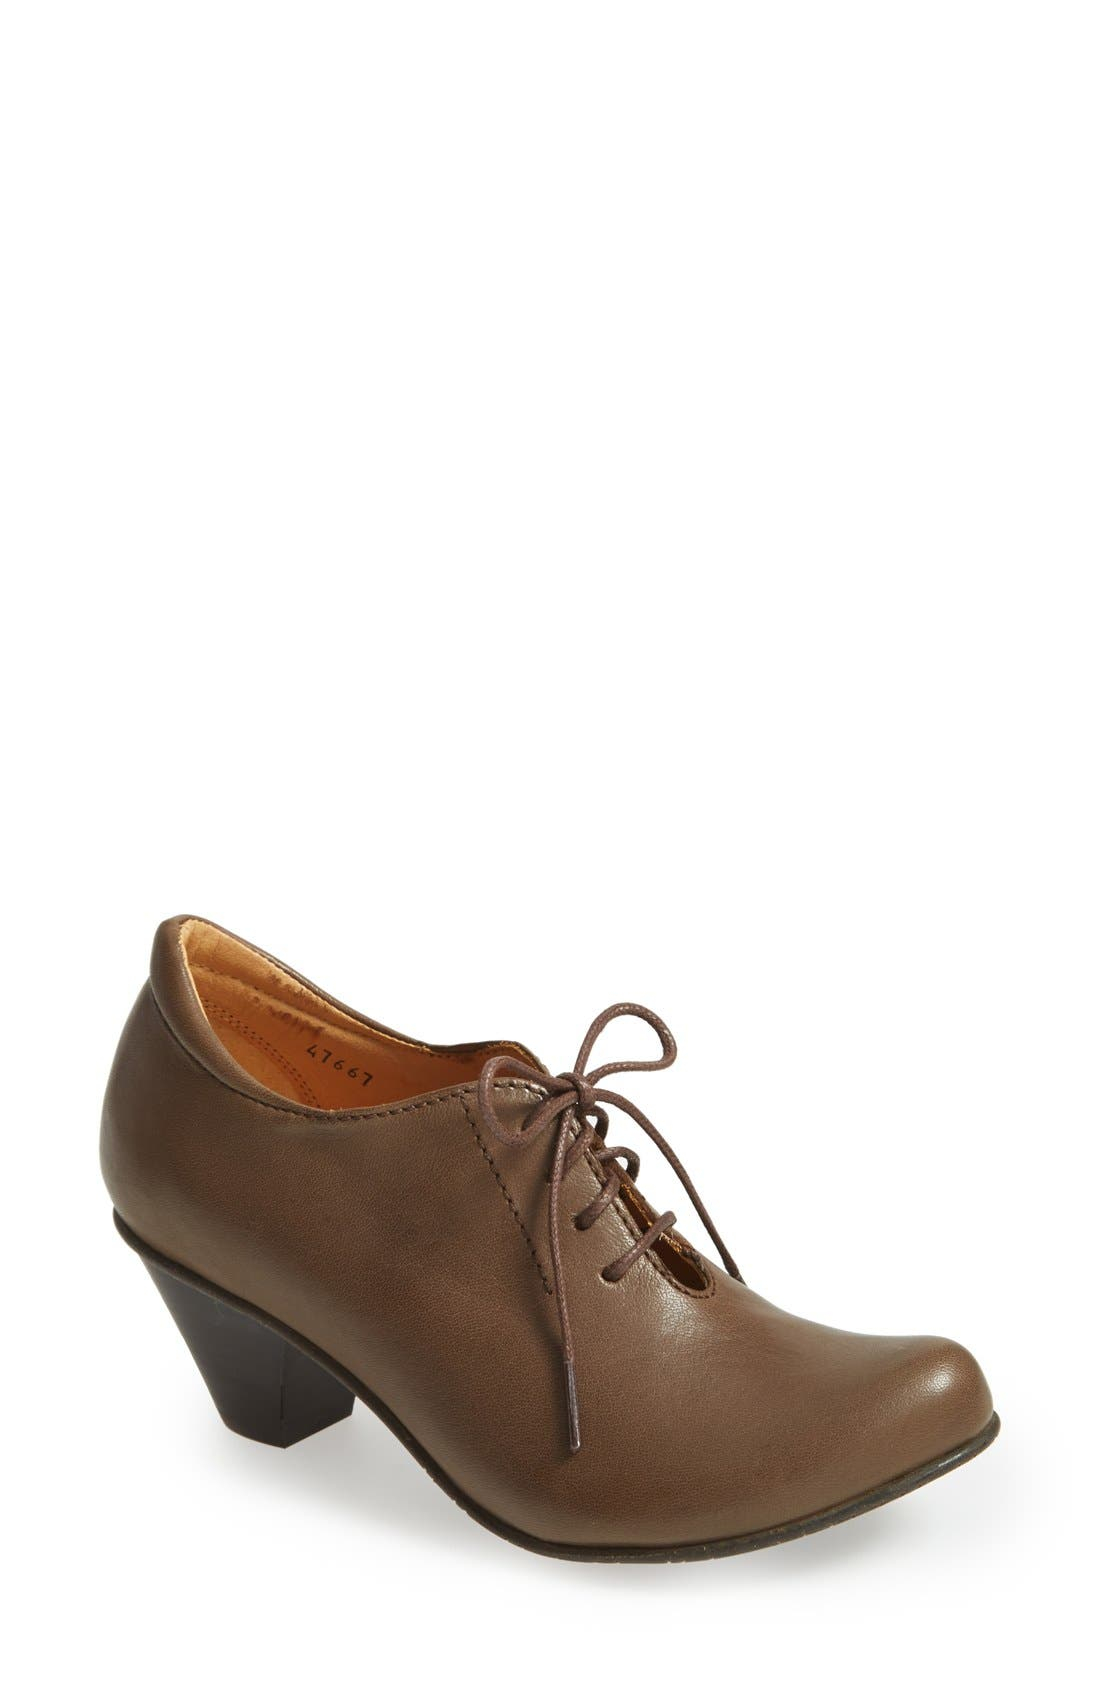 Main Image - Fidji 'L870' Oxford Pump (Women)